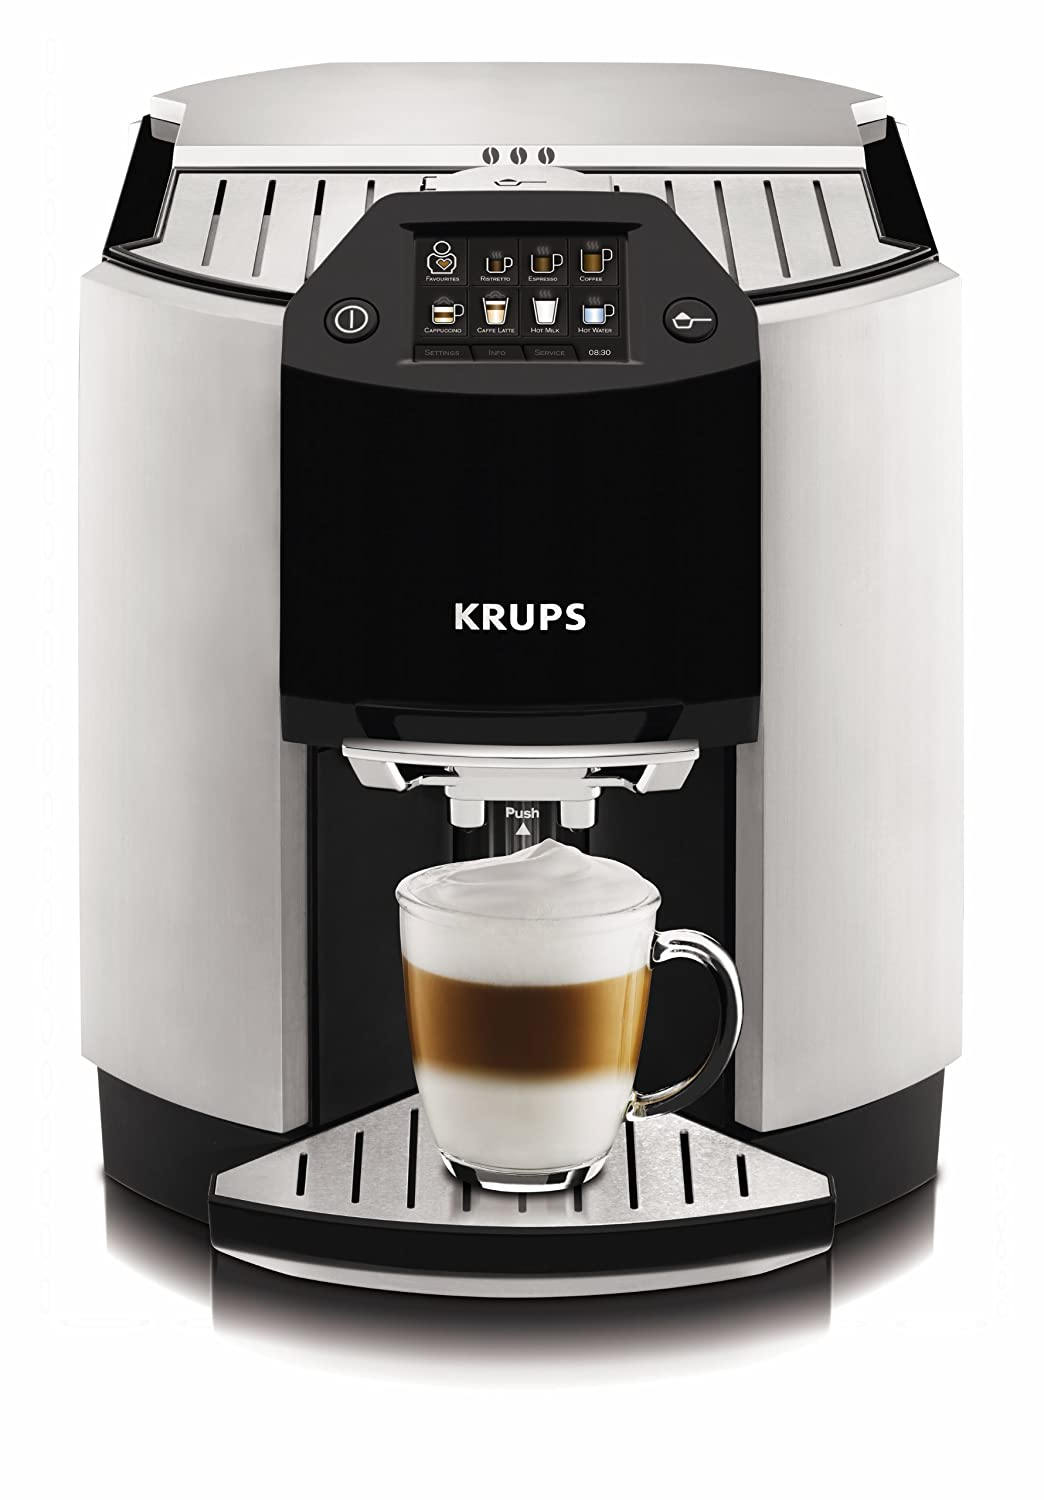 Krups Km9008 Cup On Request Programmable 12 Cup Coffee Maker